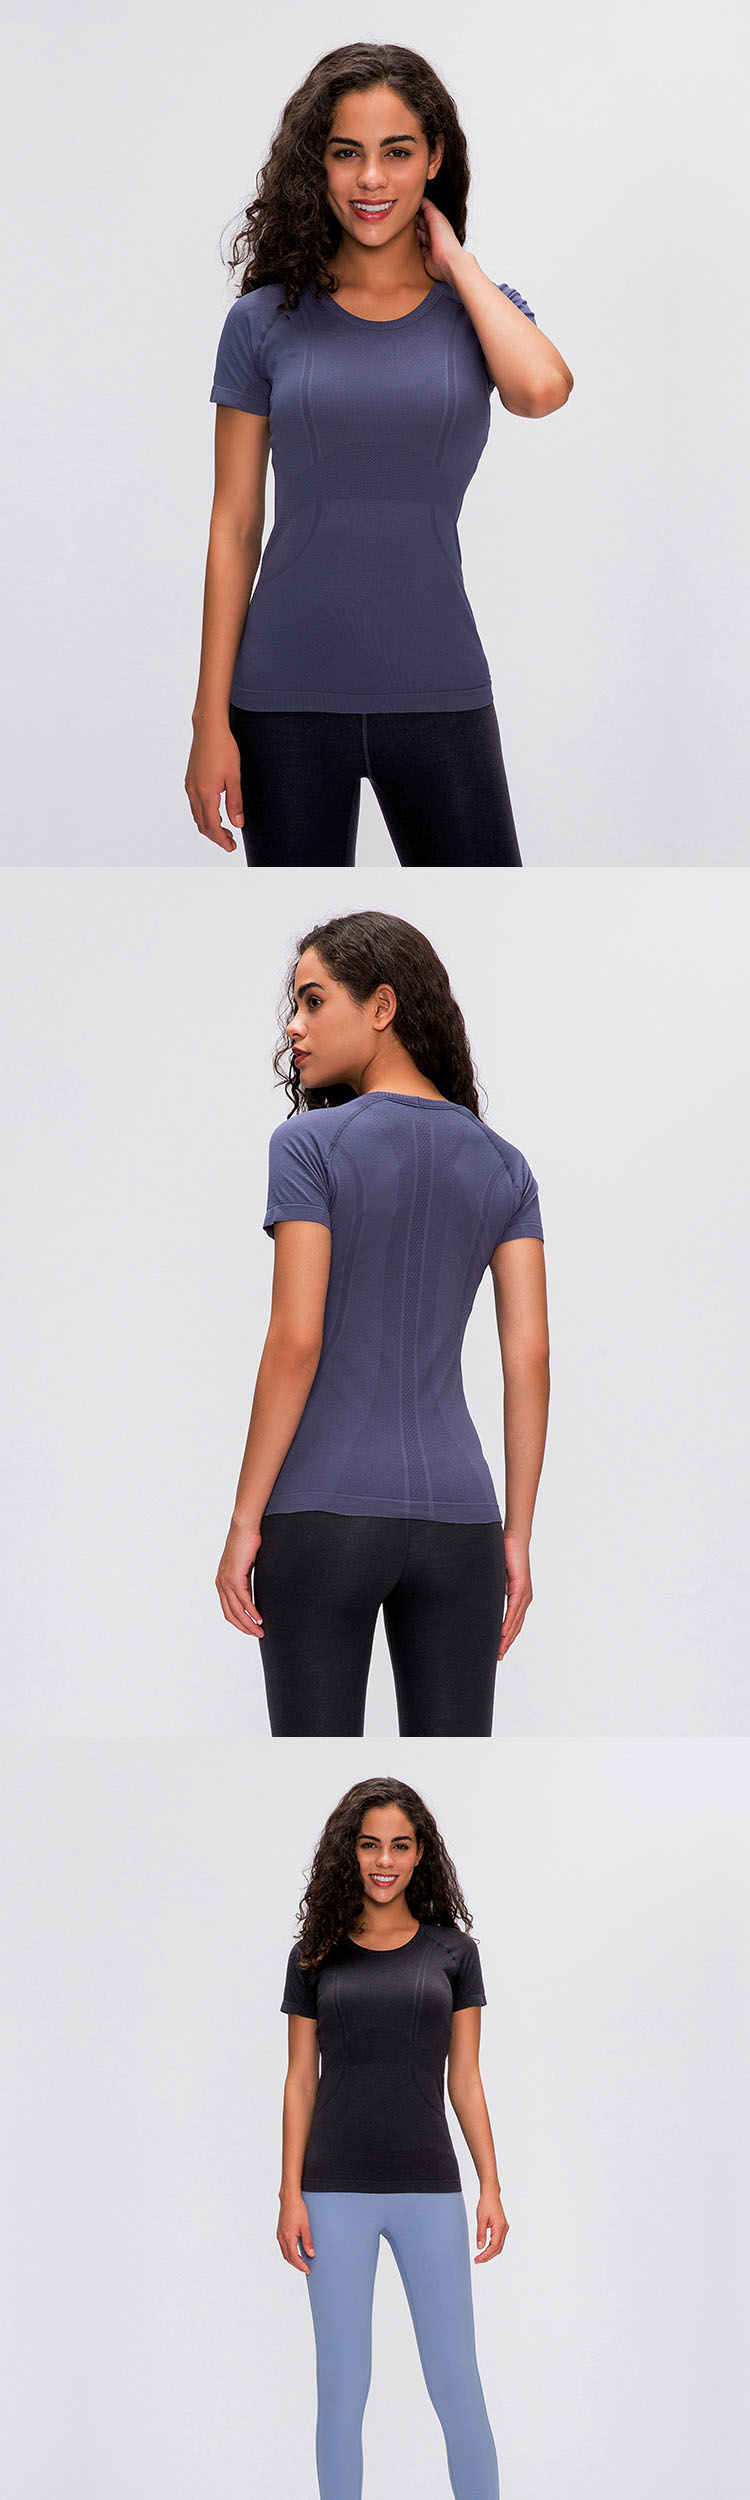 Professional sports quick-drying fabric, absorb heat and sweat, release dryness.